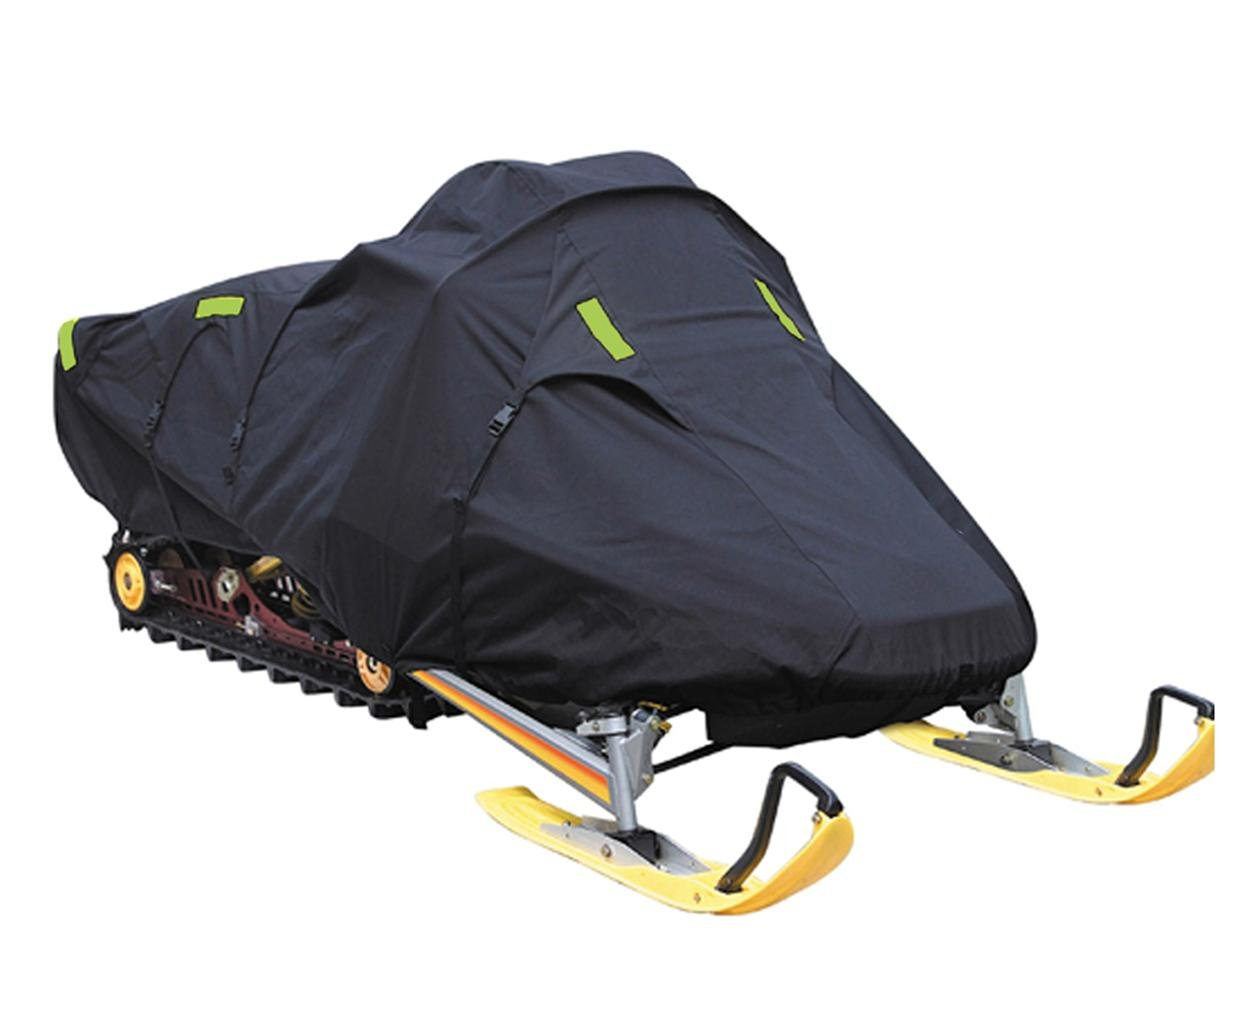 Trailerable Snowmobile Snow Machine Sled Cover Ski Doo Summit Highmark 151 2006 2007 by SBU